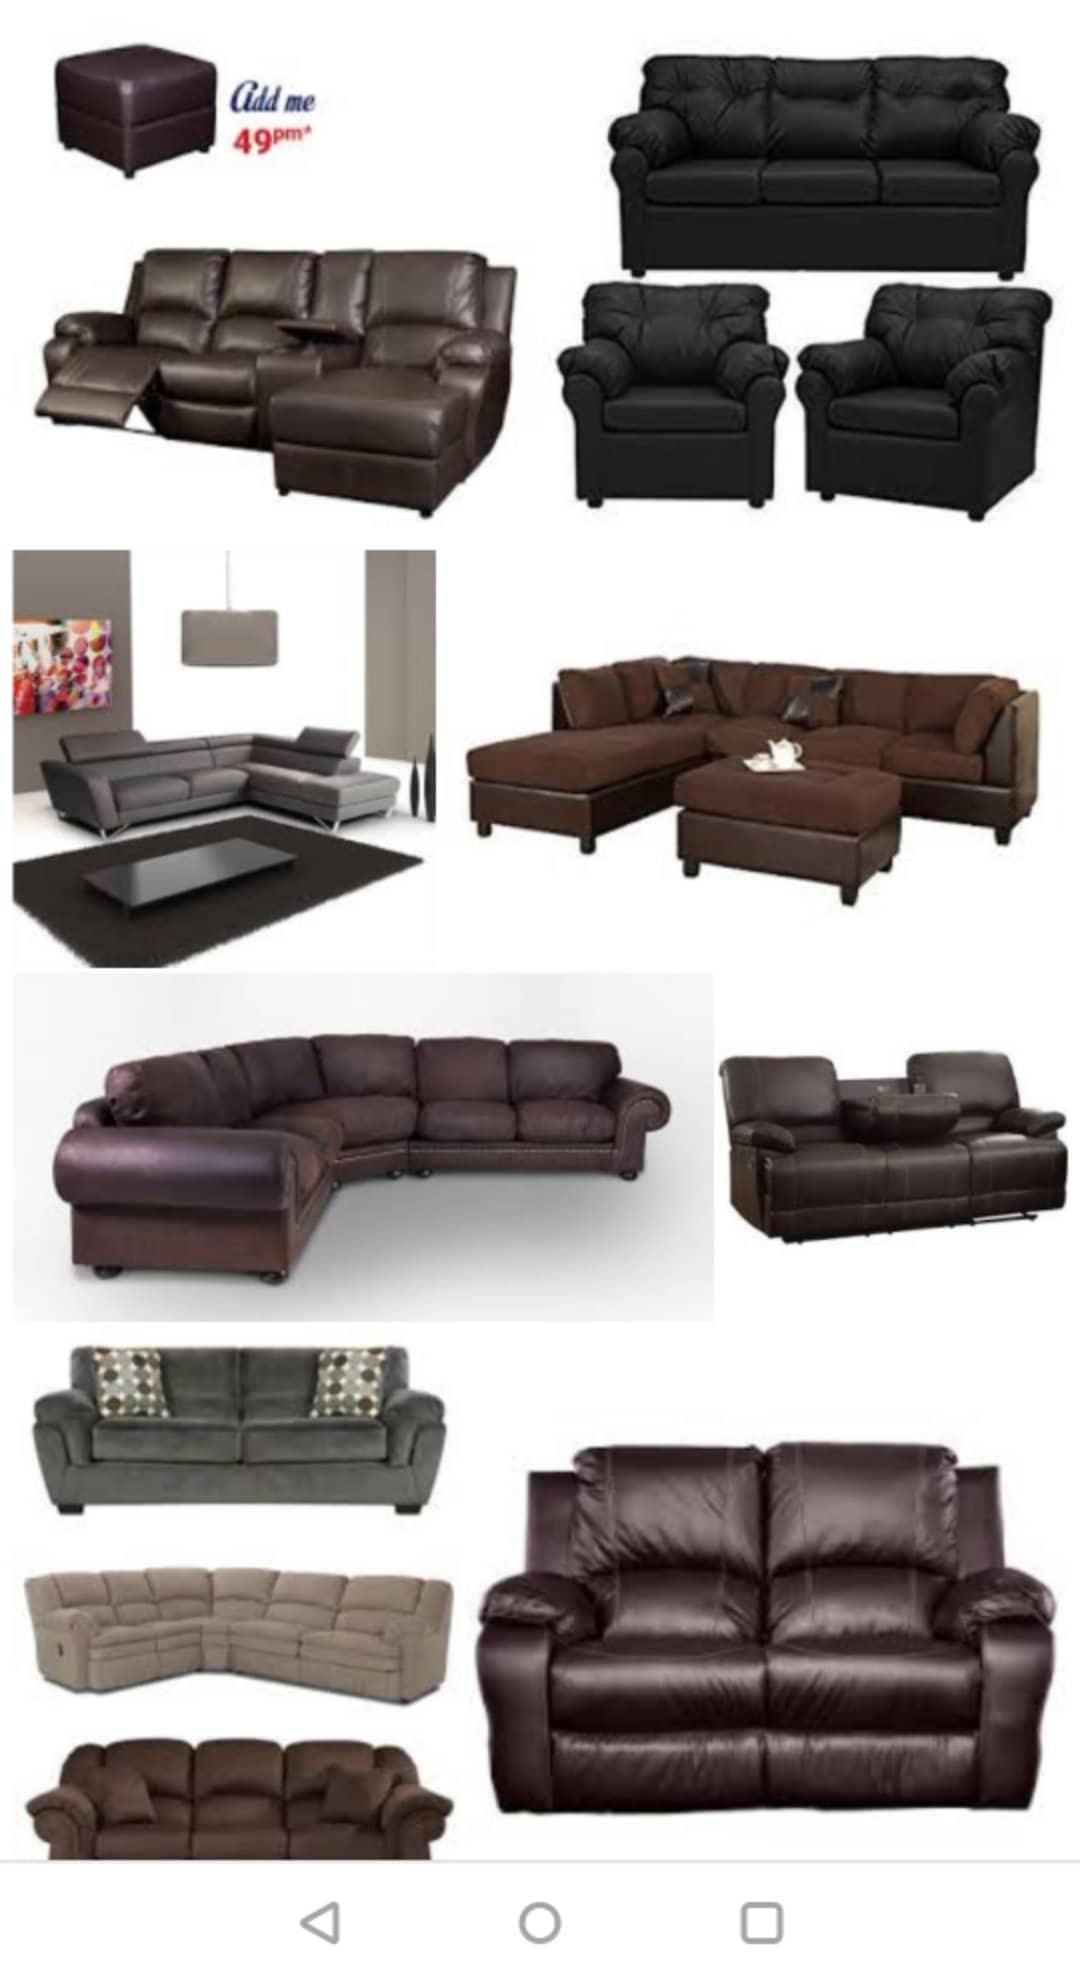 15 Best Sofas And Couches To Buy In 2019 Strong Article